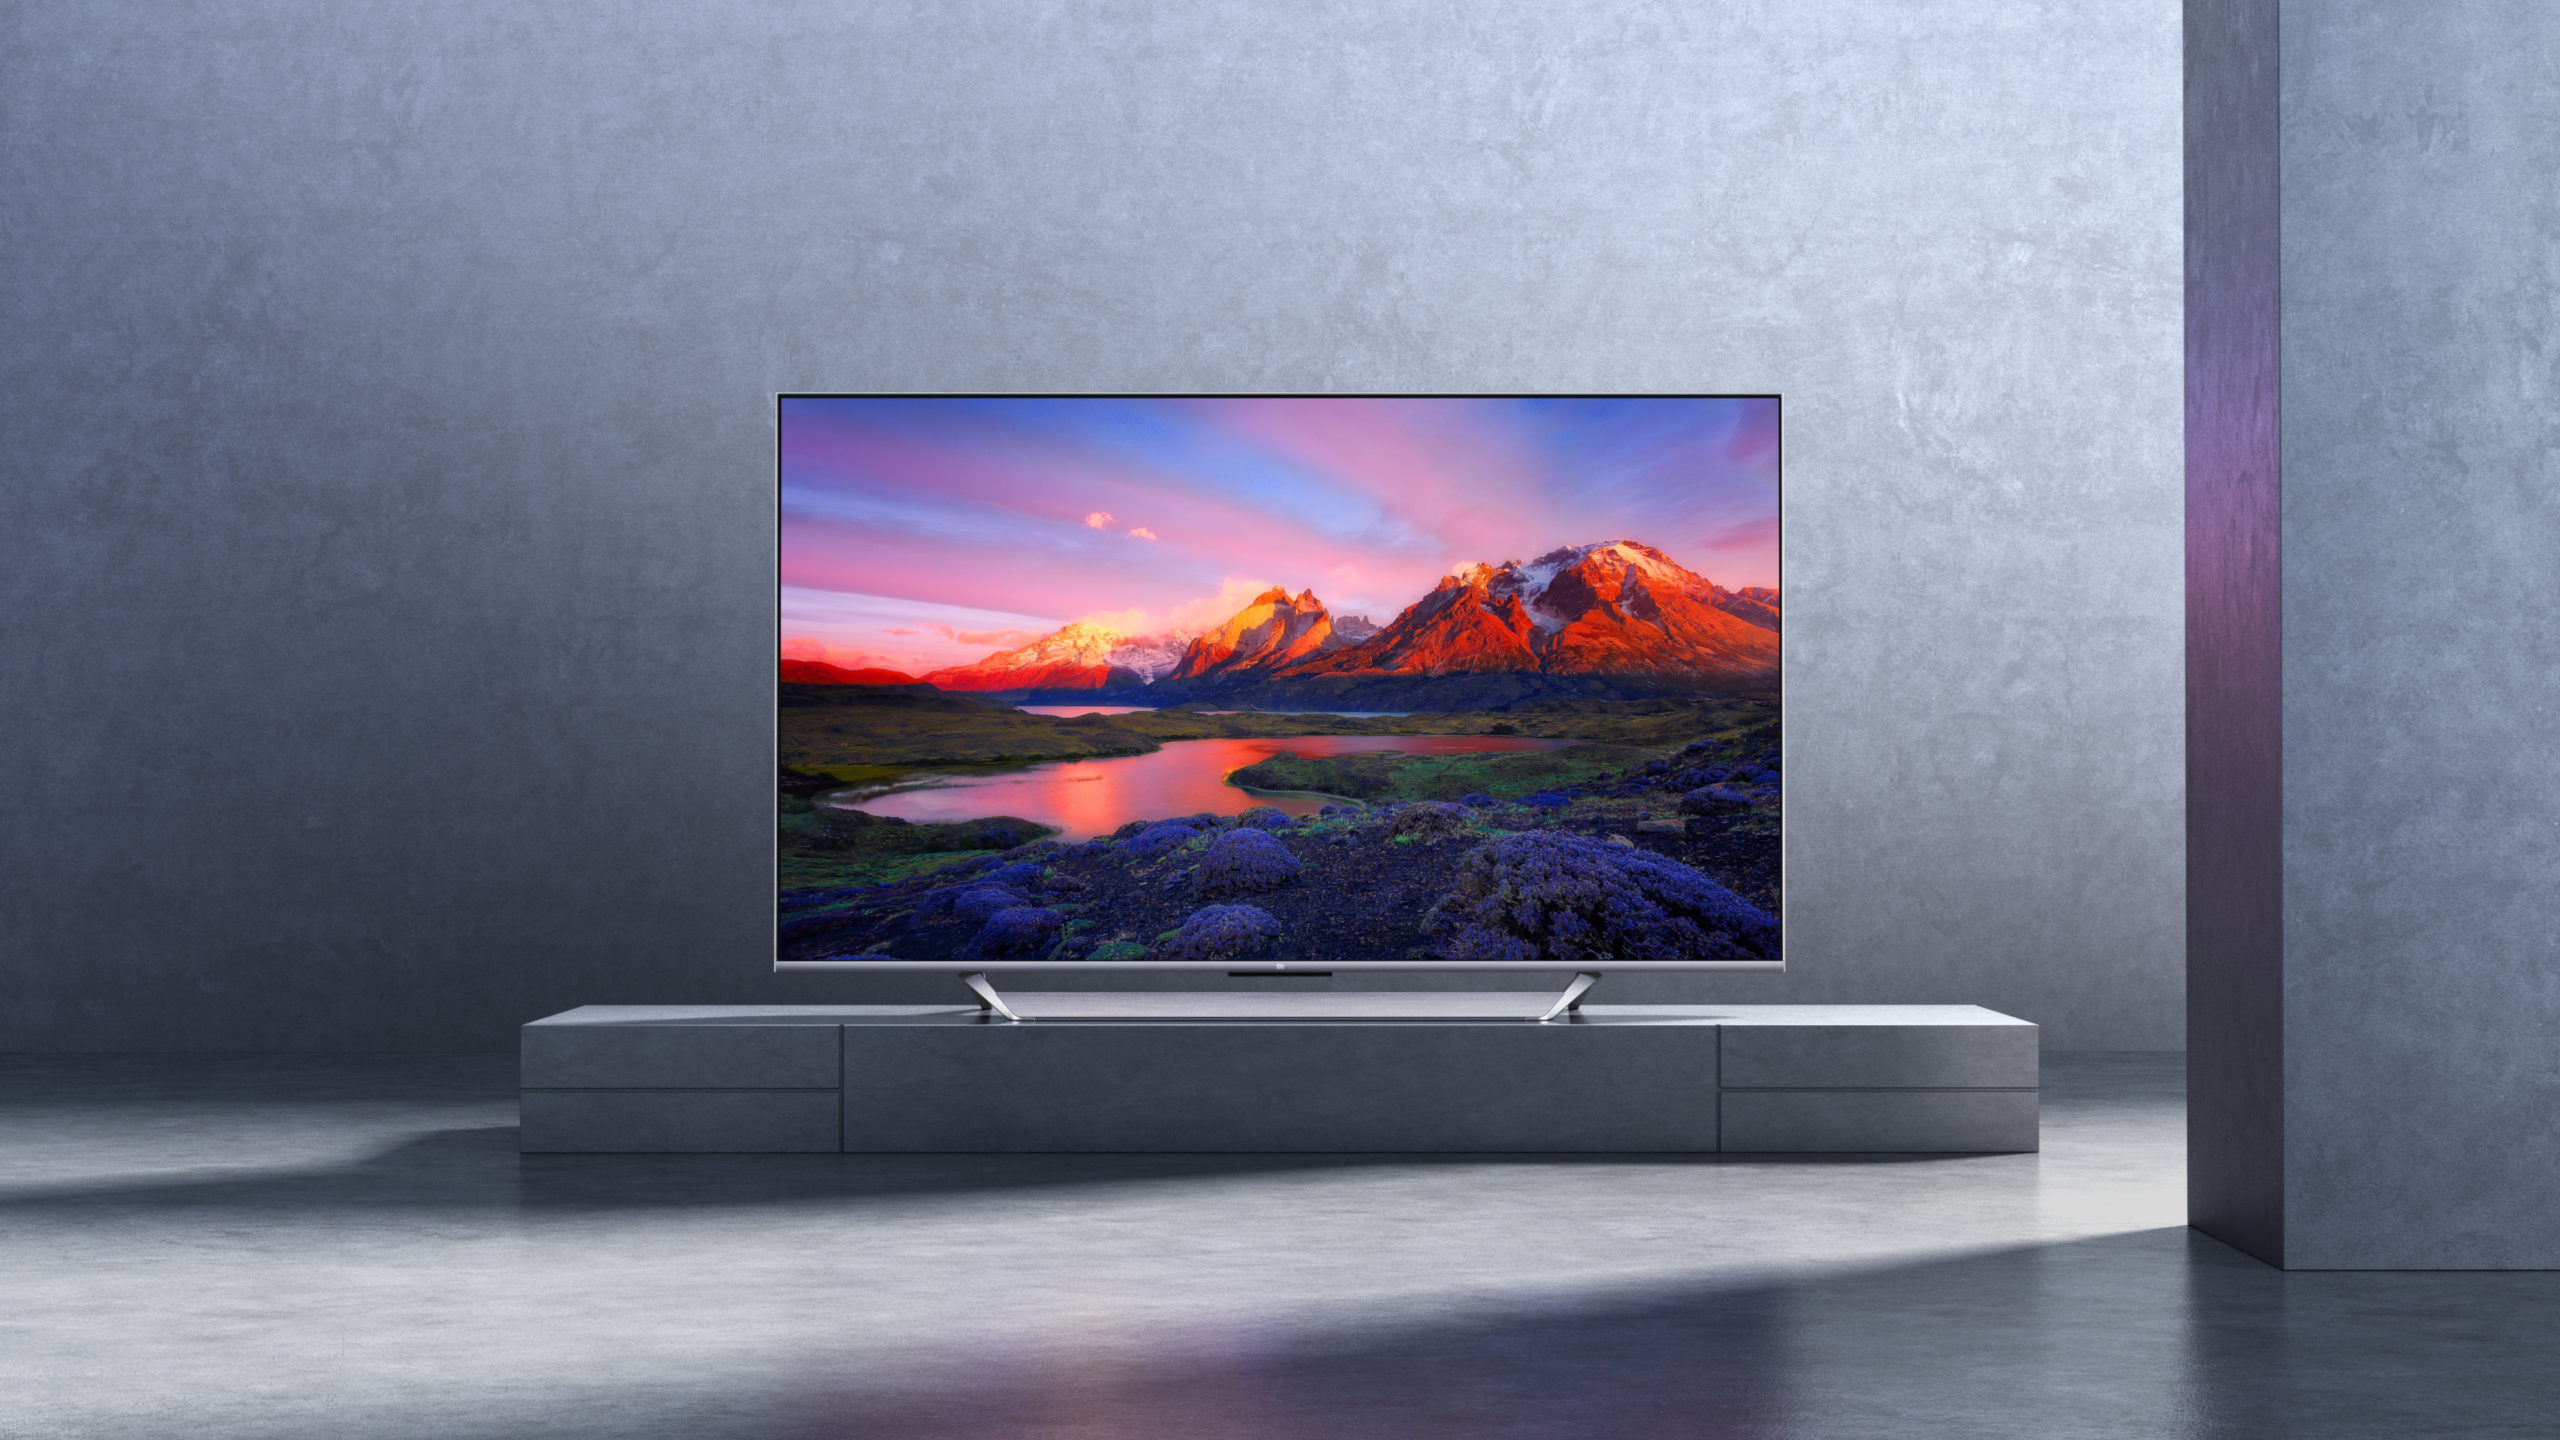 On March 17, Xiaomi to launch first Redmi TV in India